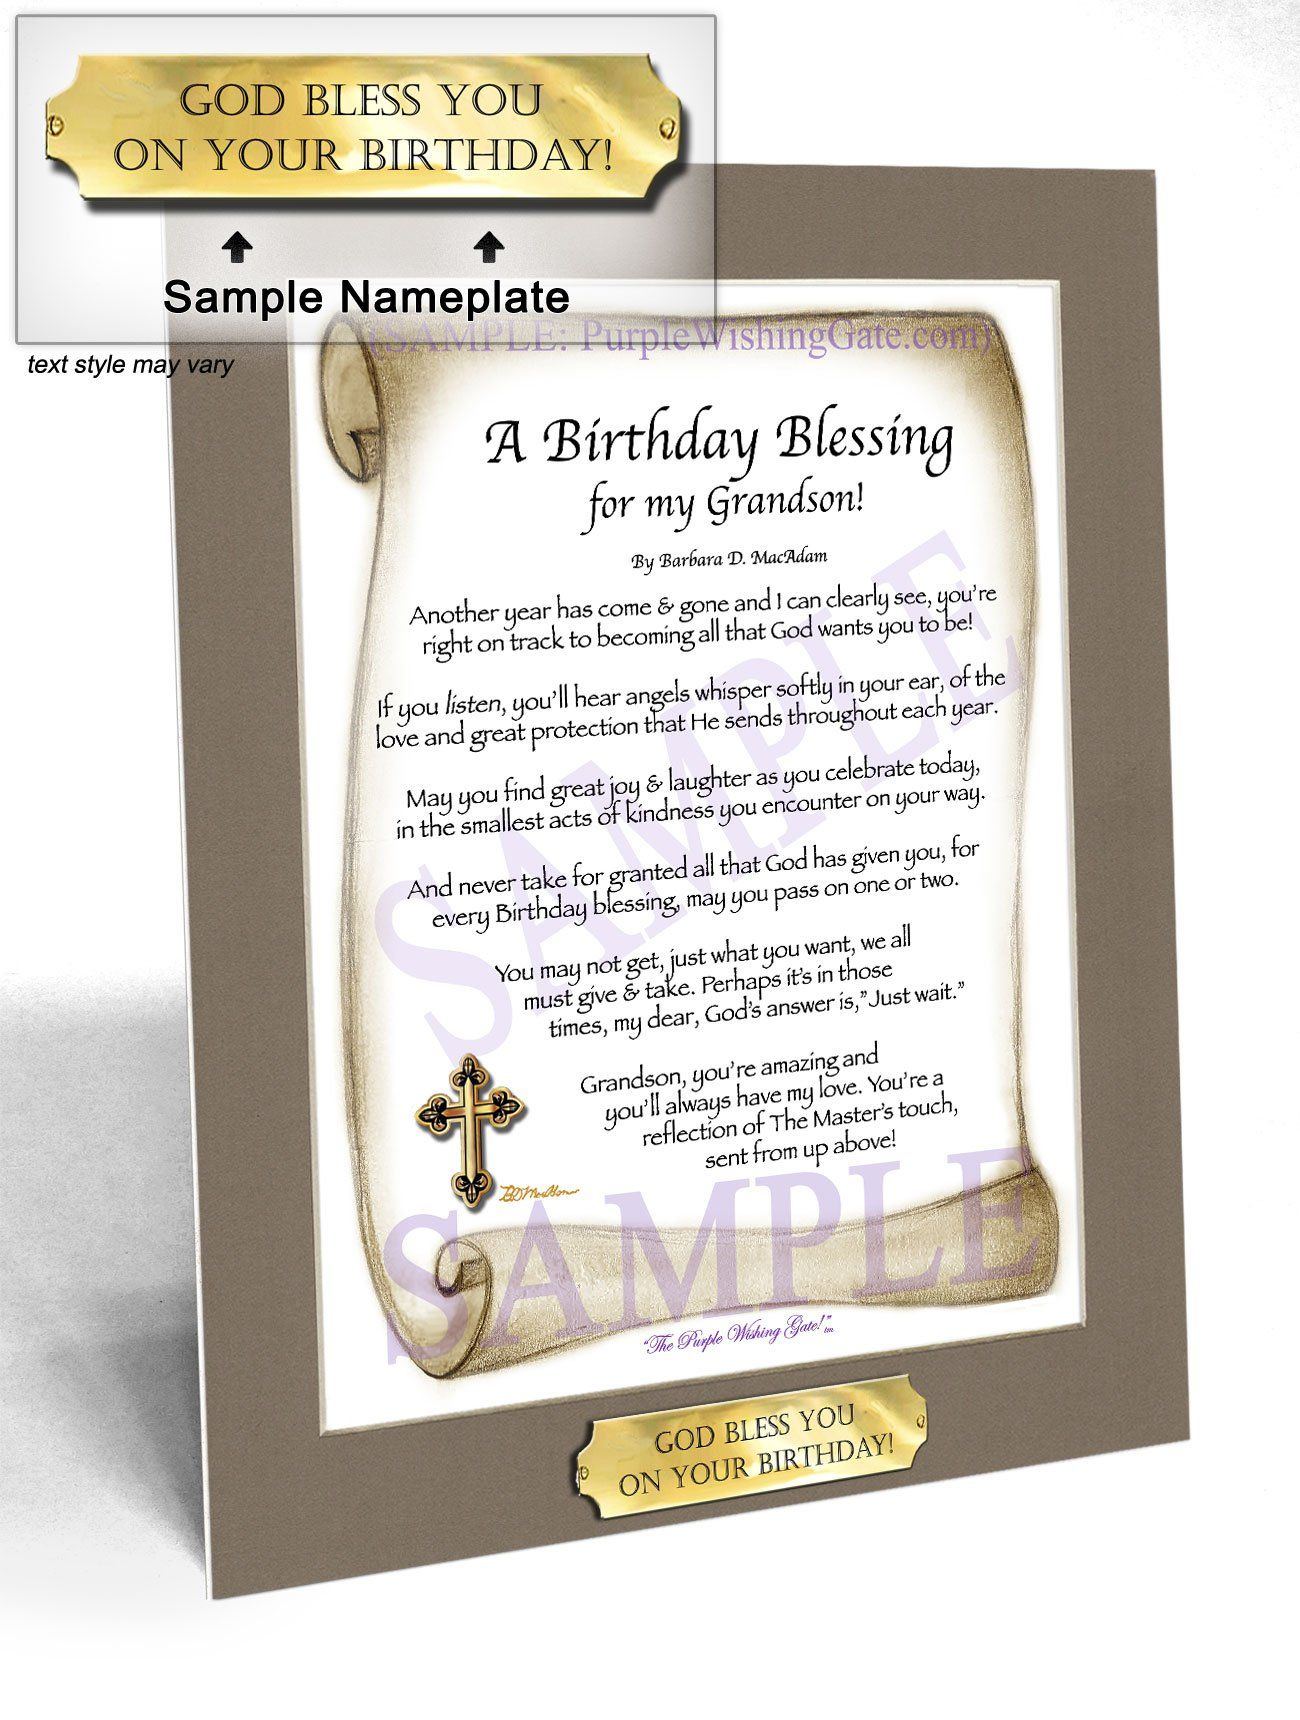 Personalized Poem Gift for that Special Grandson See all styles